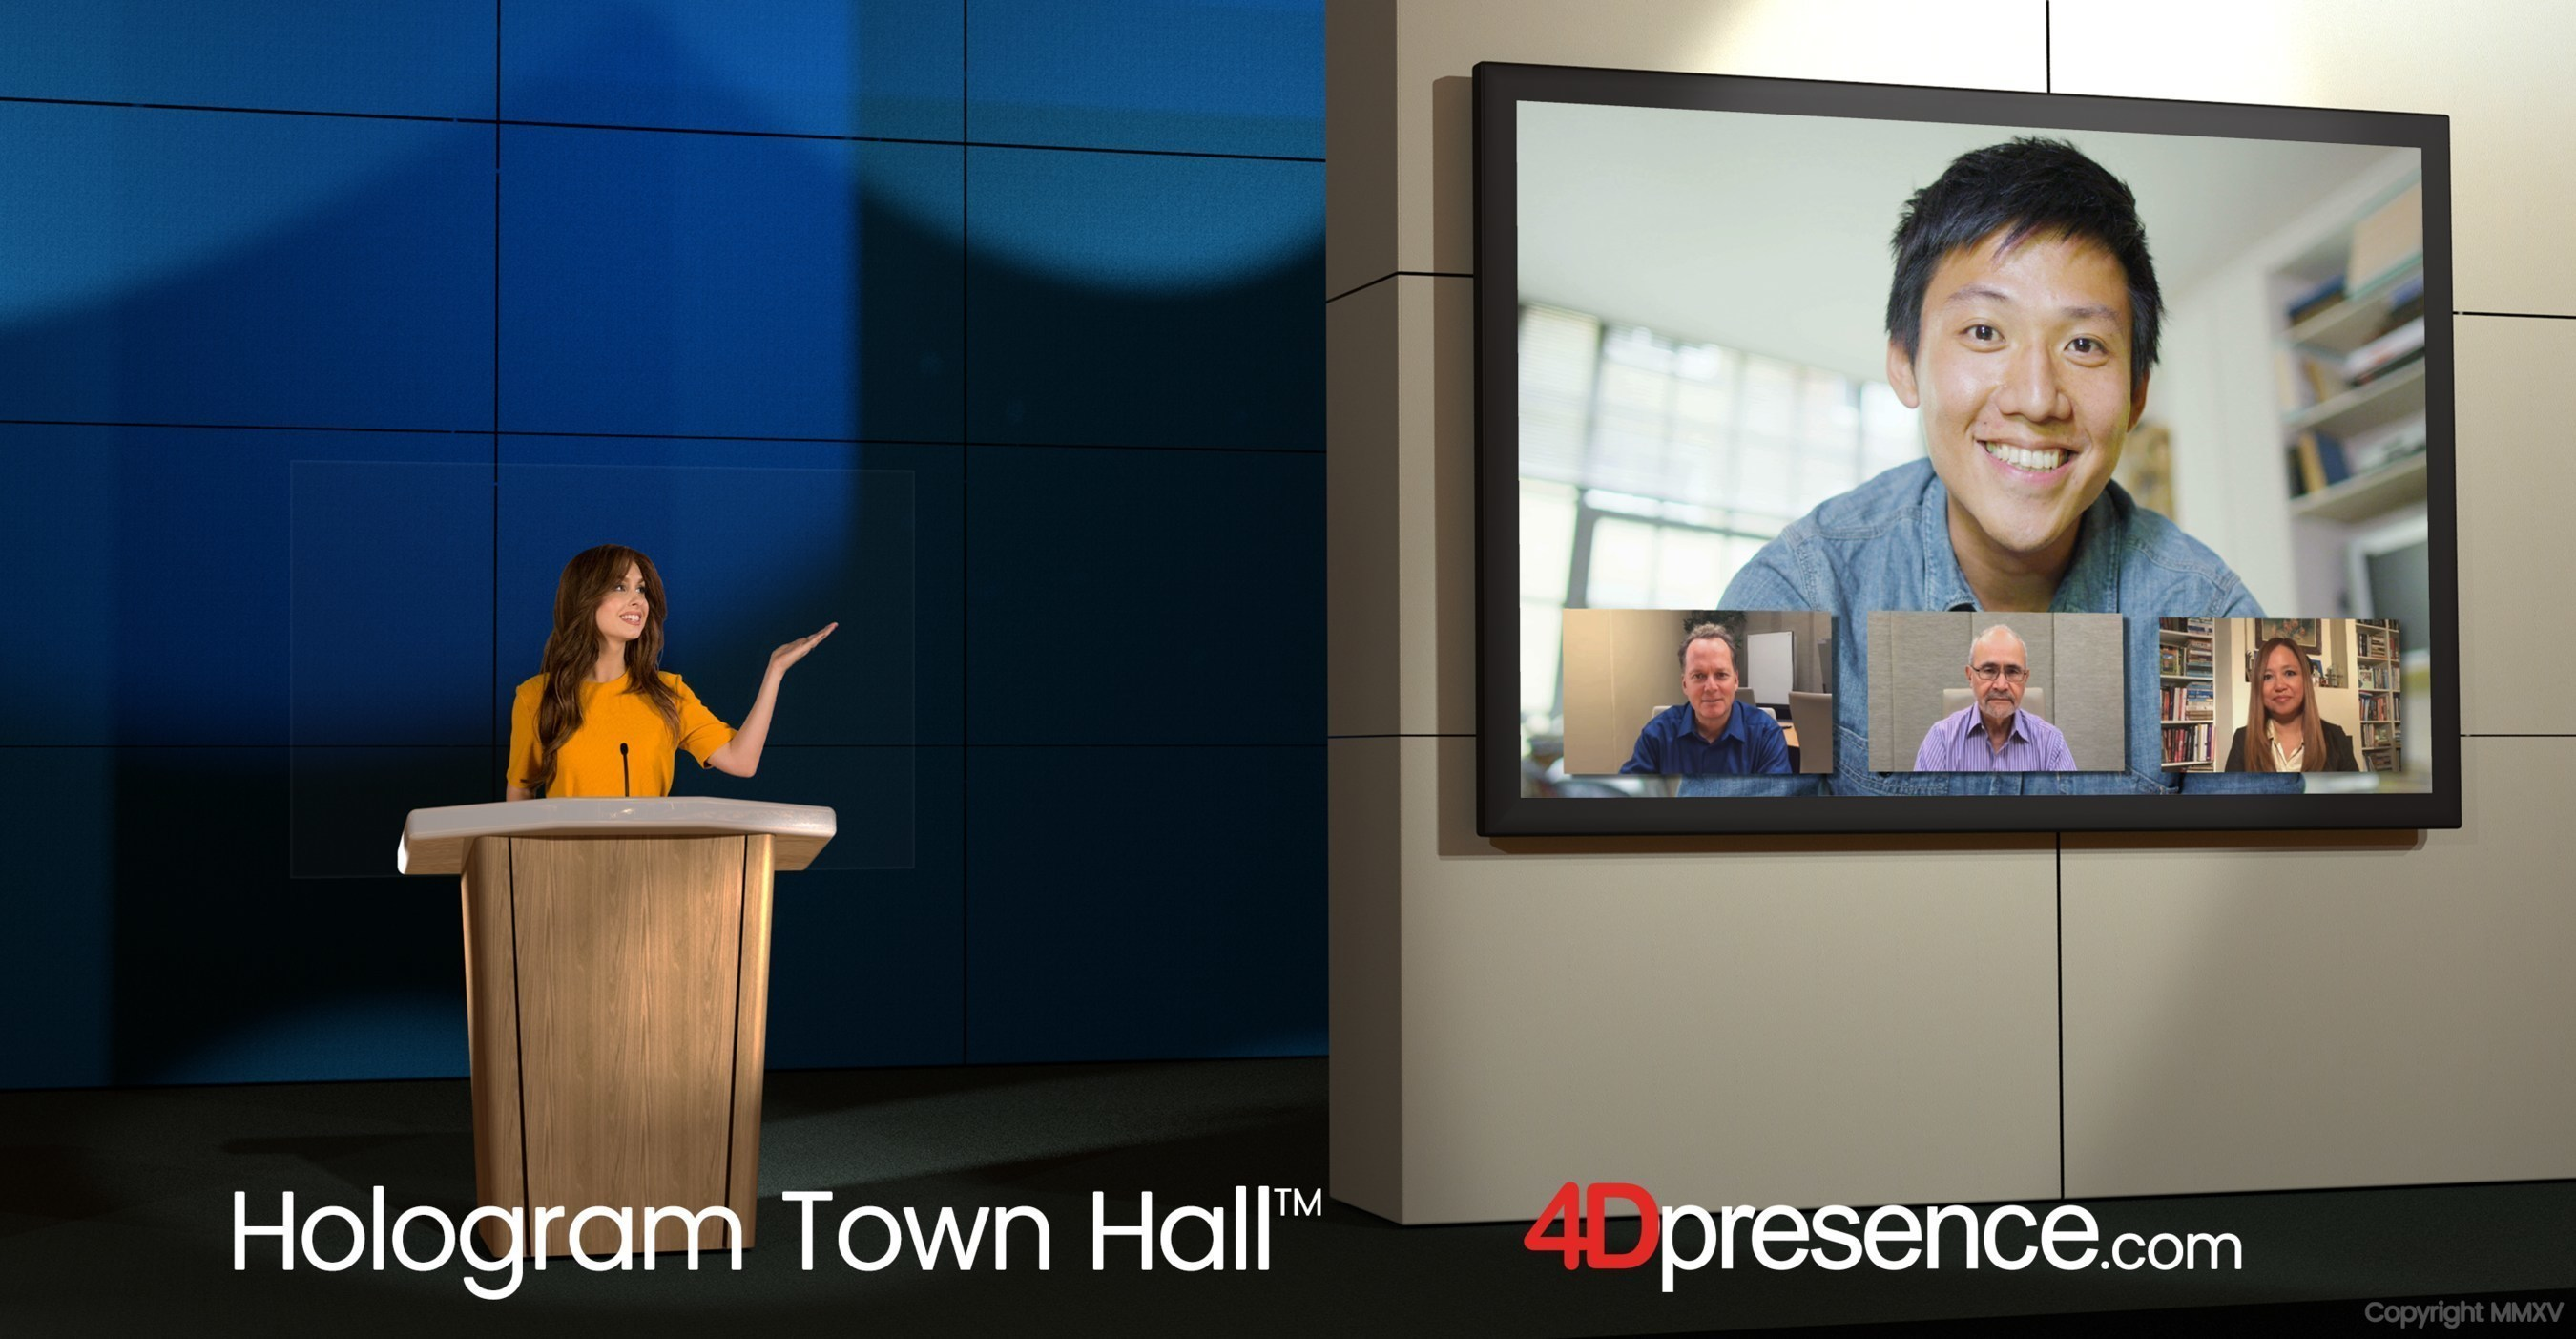 The Holographic Town Hall™ for Presidential Candidates and National Issues Launches, Created by